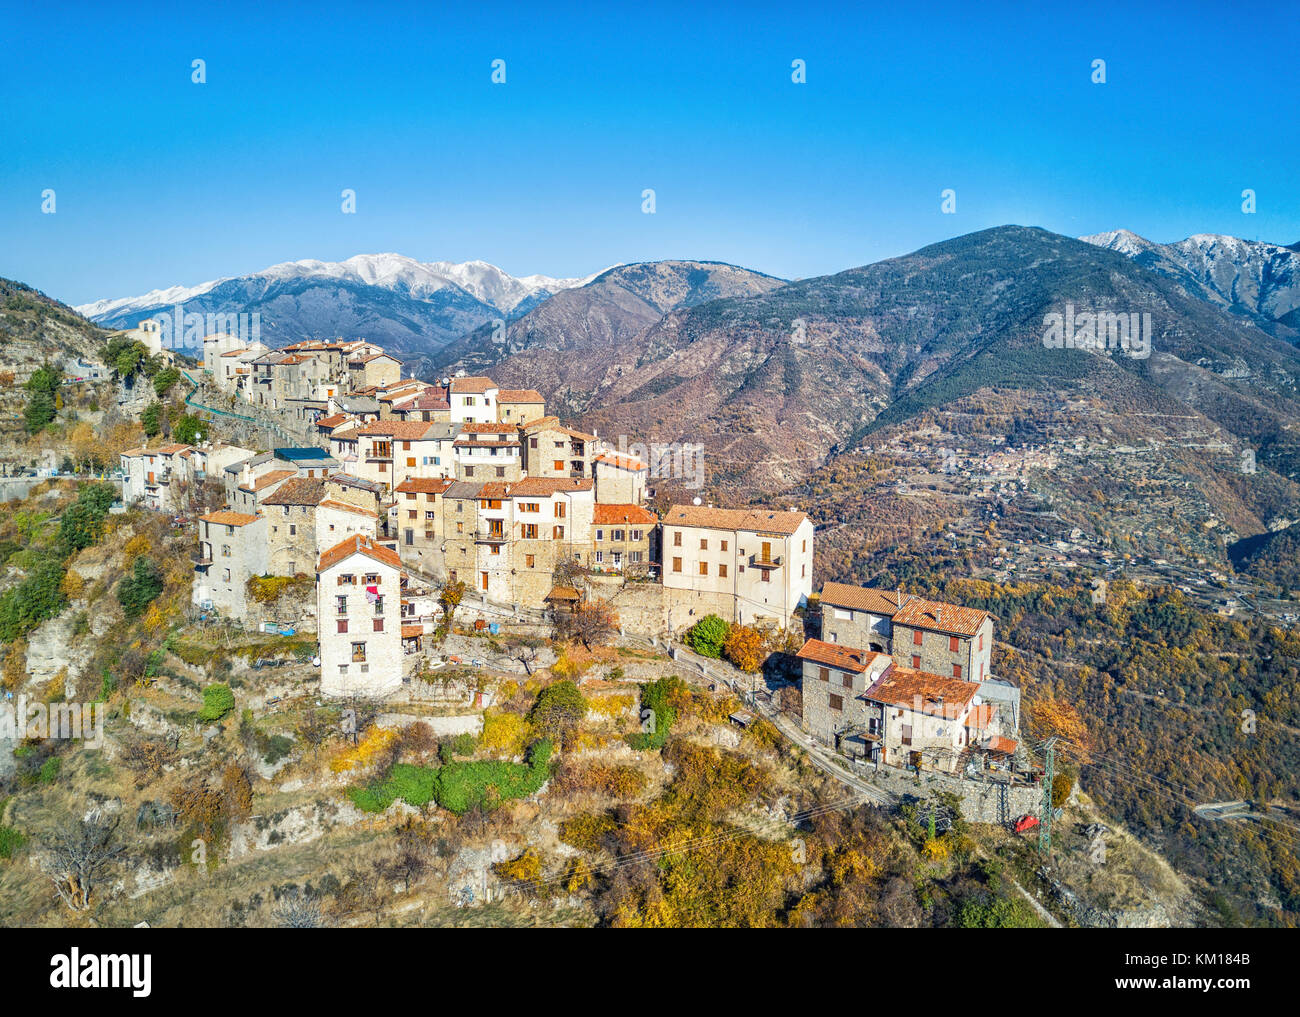 Aerial view on Bairols medieval mountain village, Alpes-Maritimes, France - Stock Image